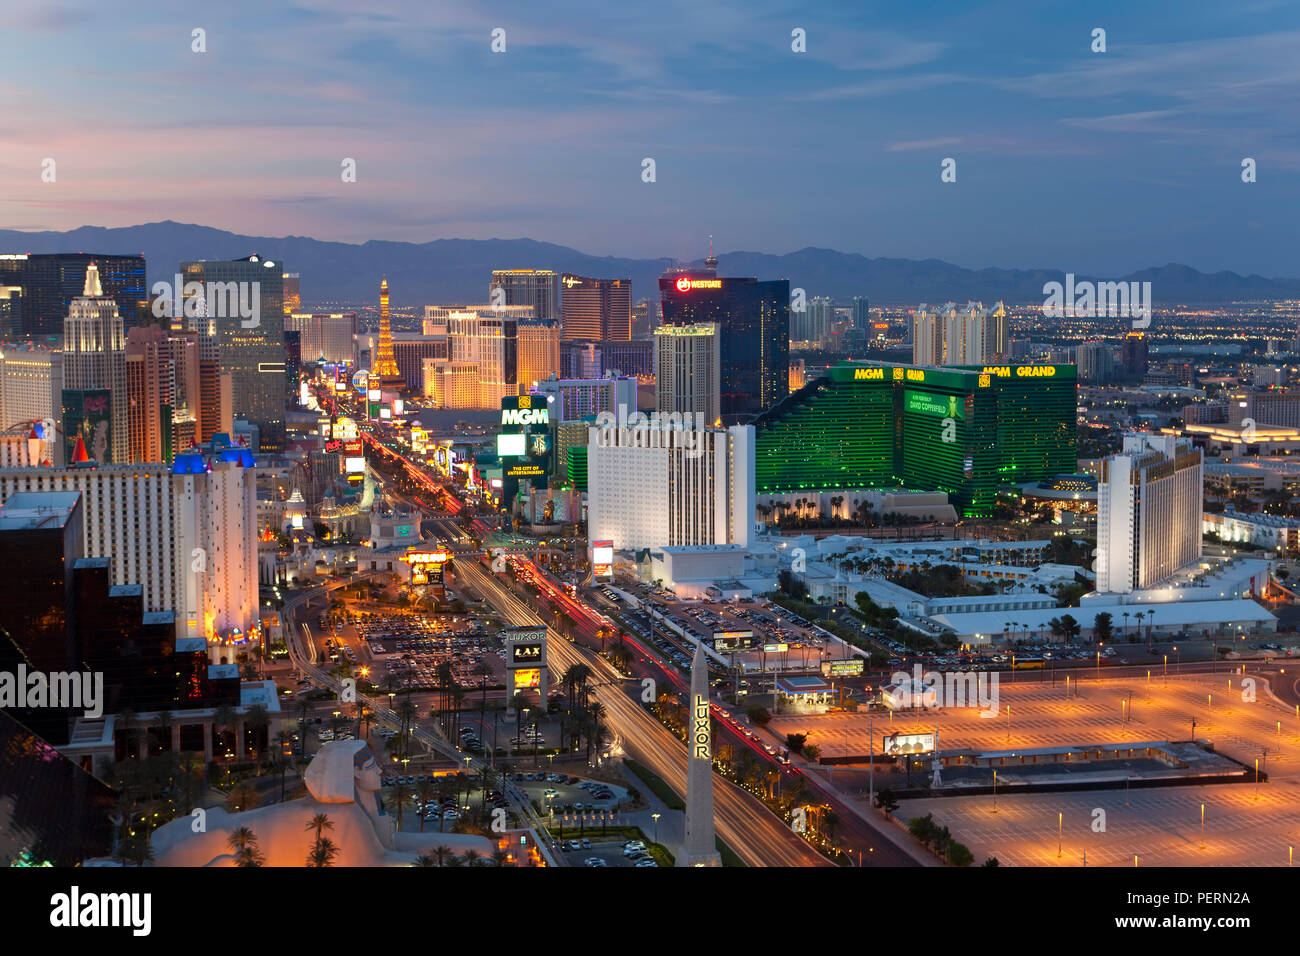 United States of America, Nevada, Las Vegas, Elevated dusk view of the Hotels and Casinos along the Strip - Stock Image